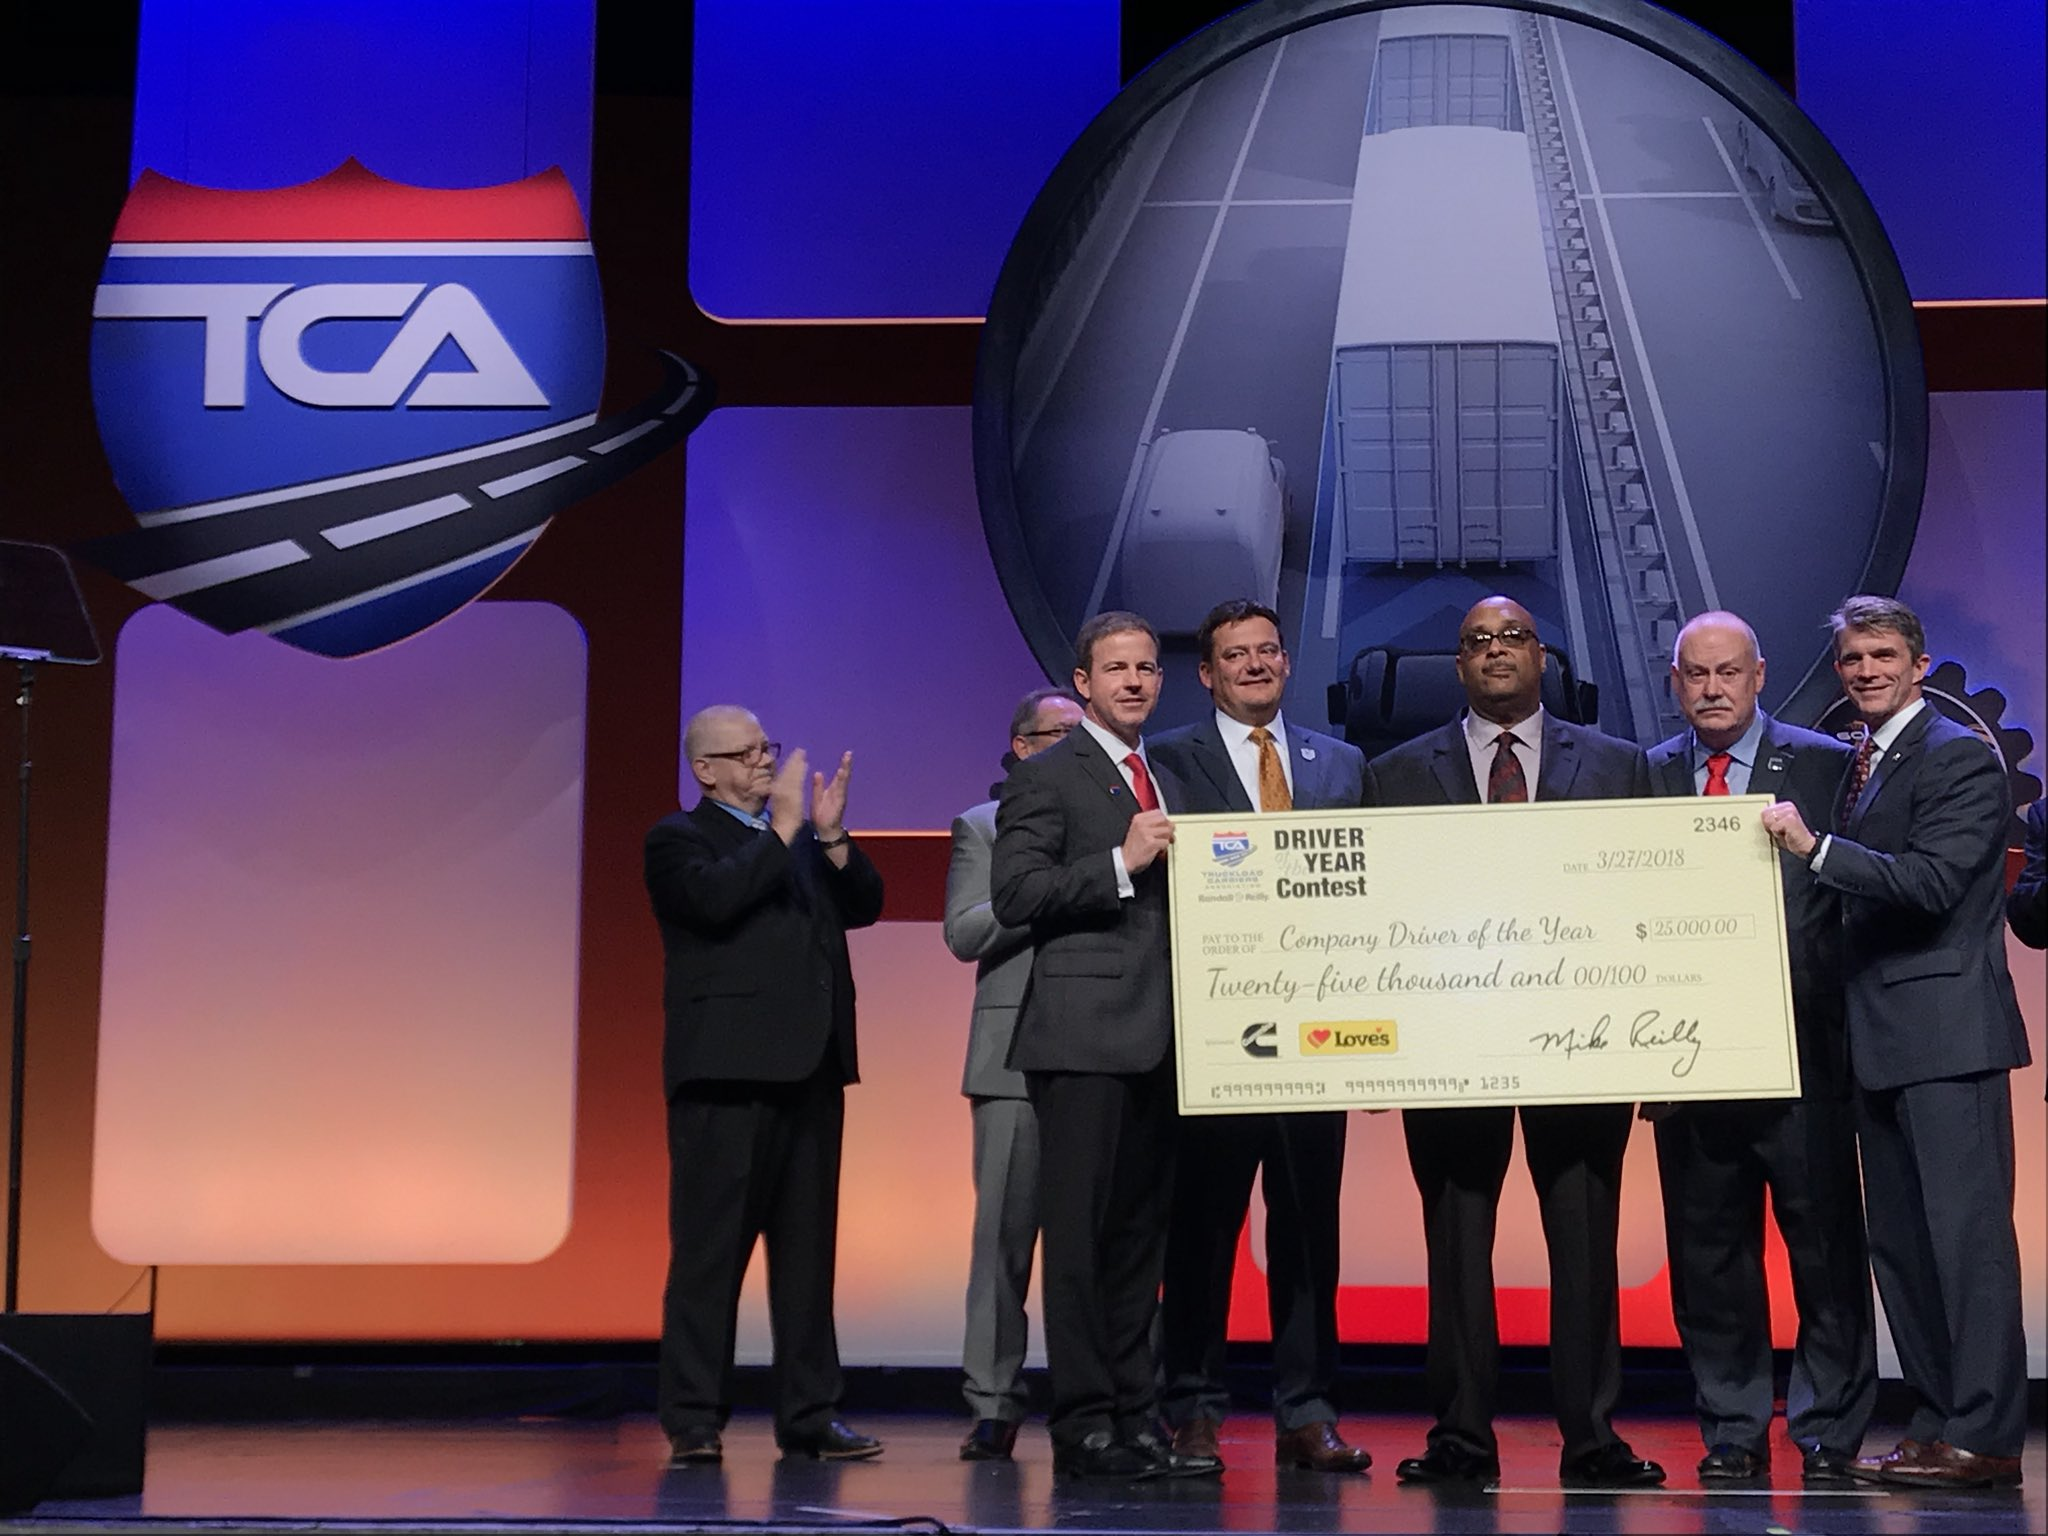 The TCA Company Driver of the Year is...Stephen Richardson of Big G Express! #2018TCA https://t.co/W0o72LnisM